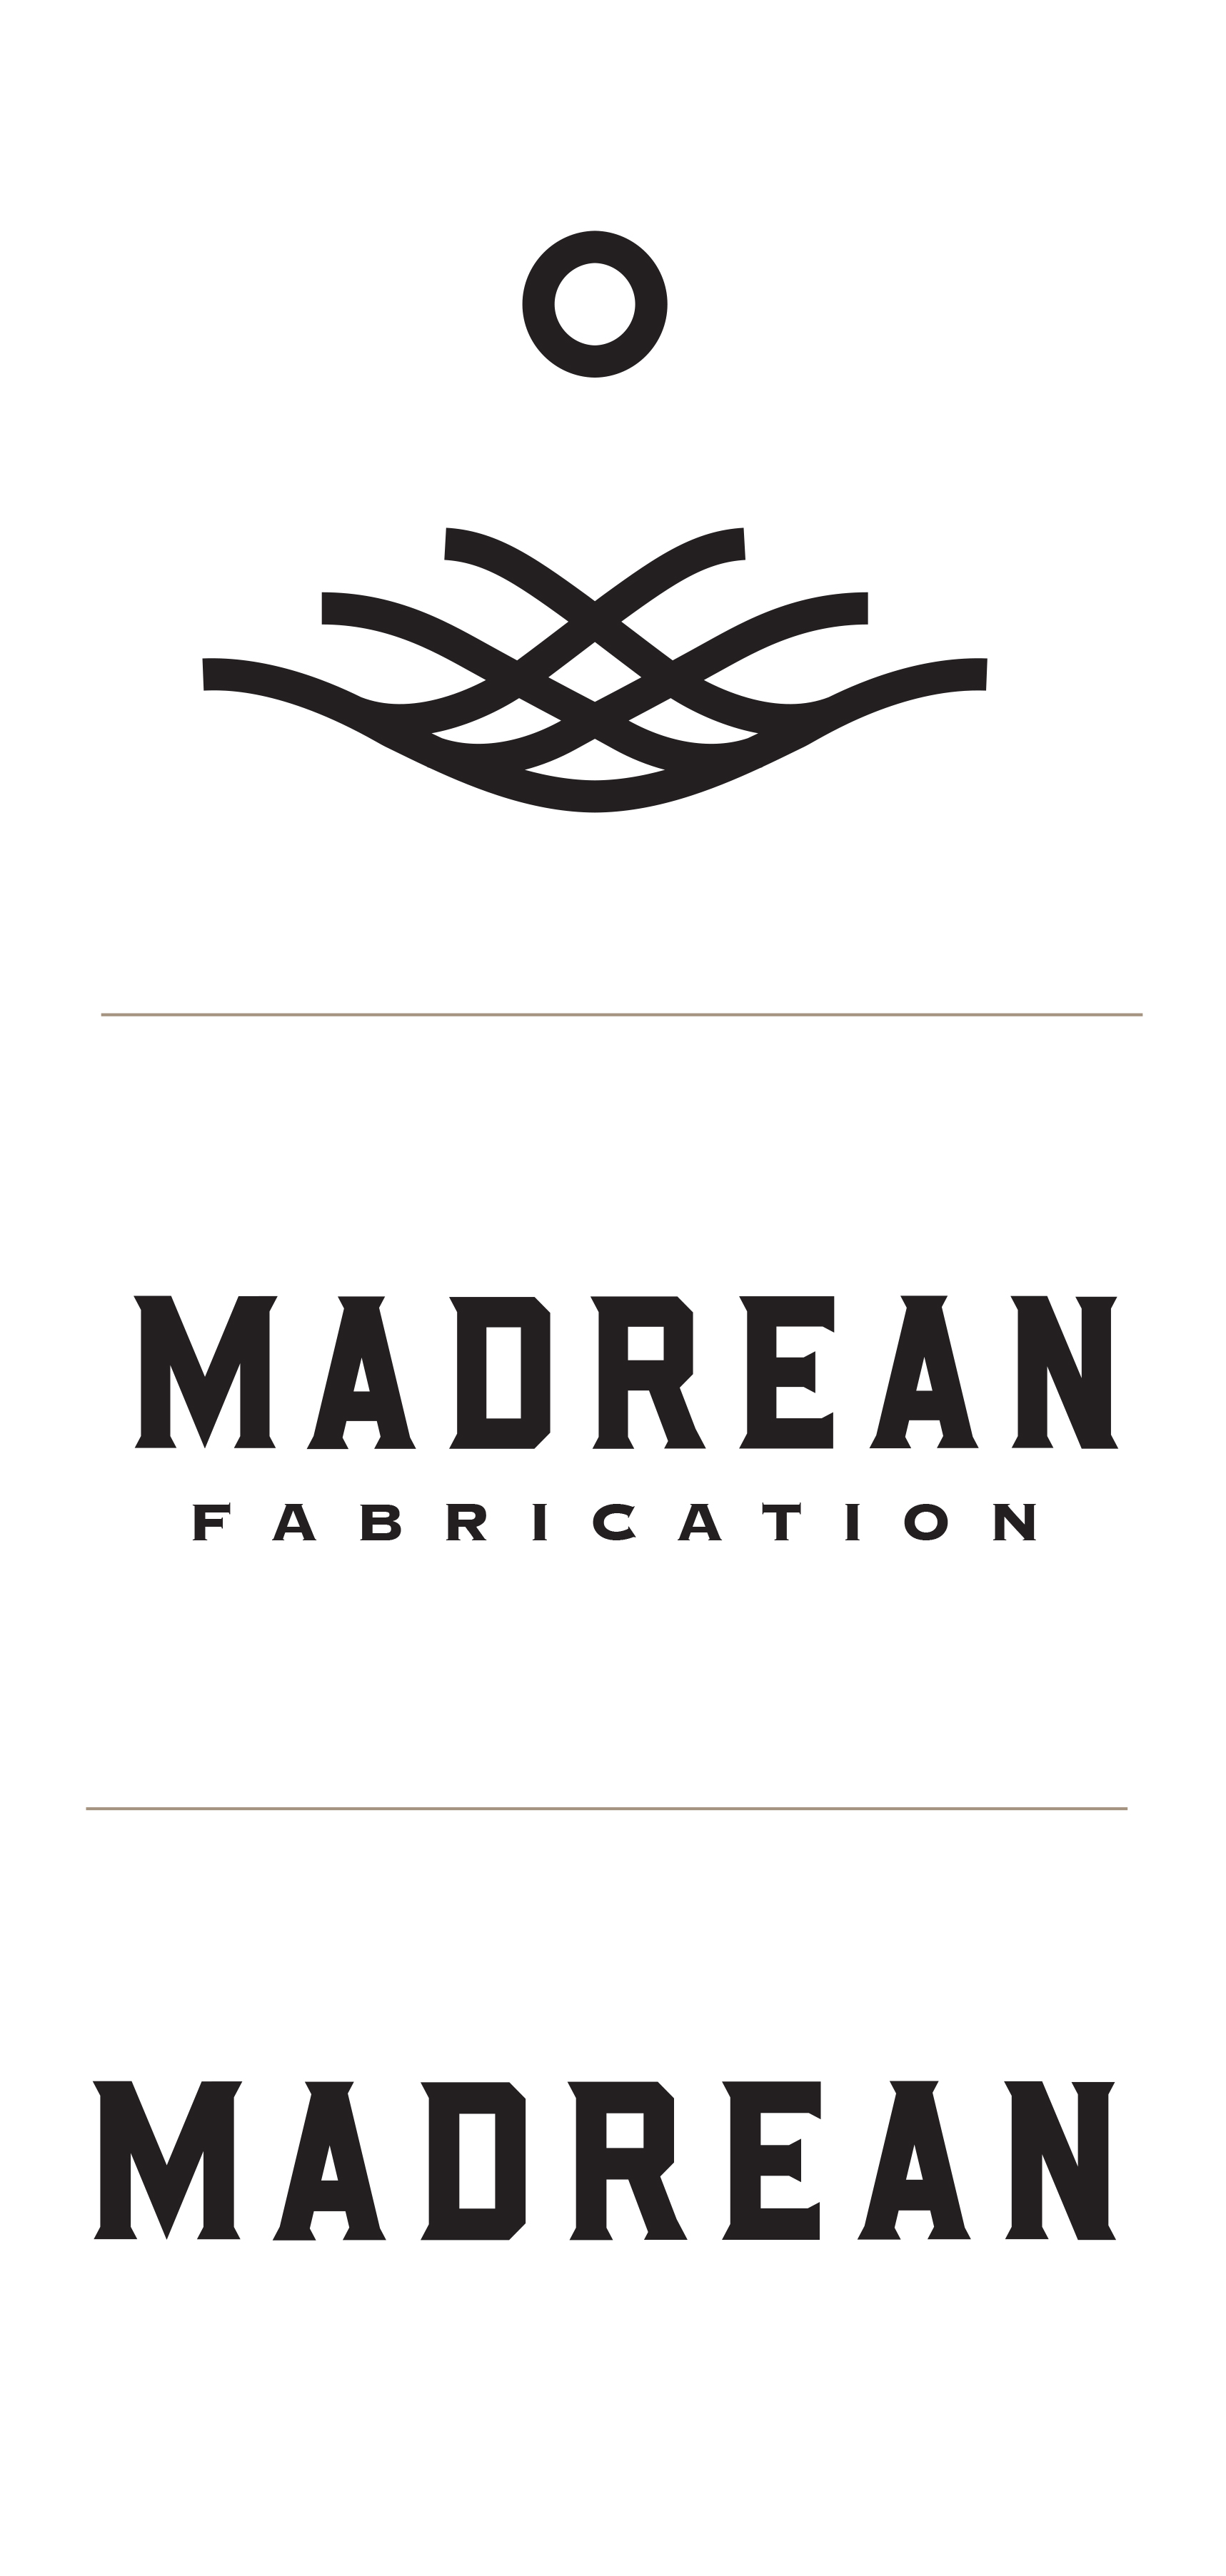 Madrean logos and icon